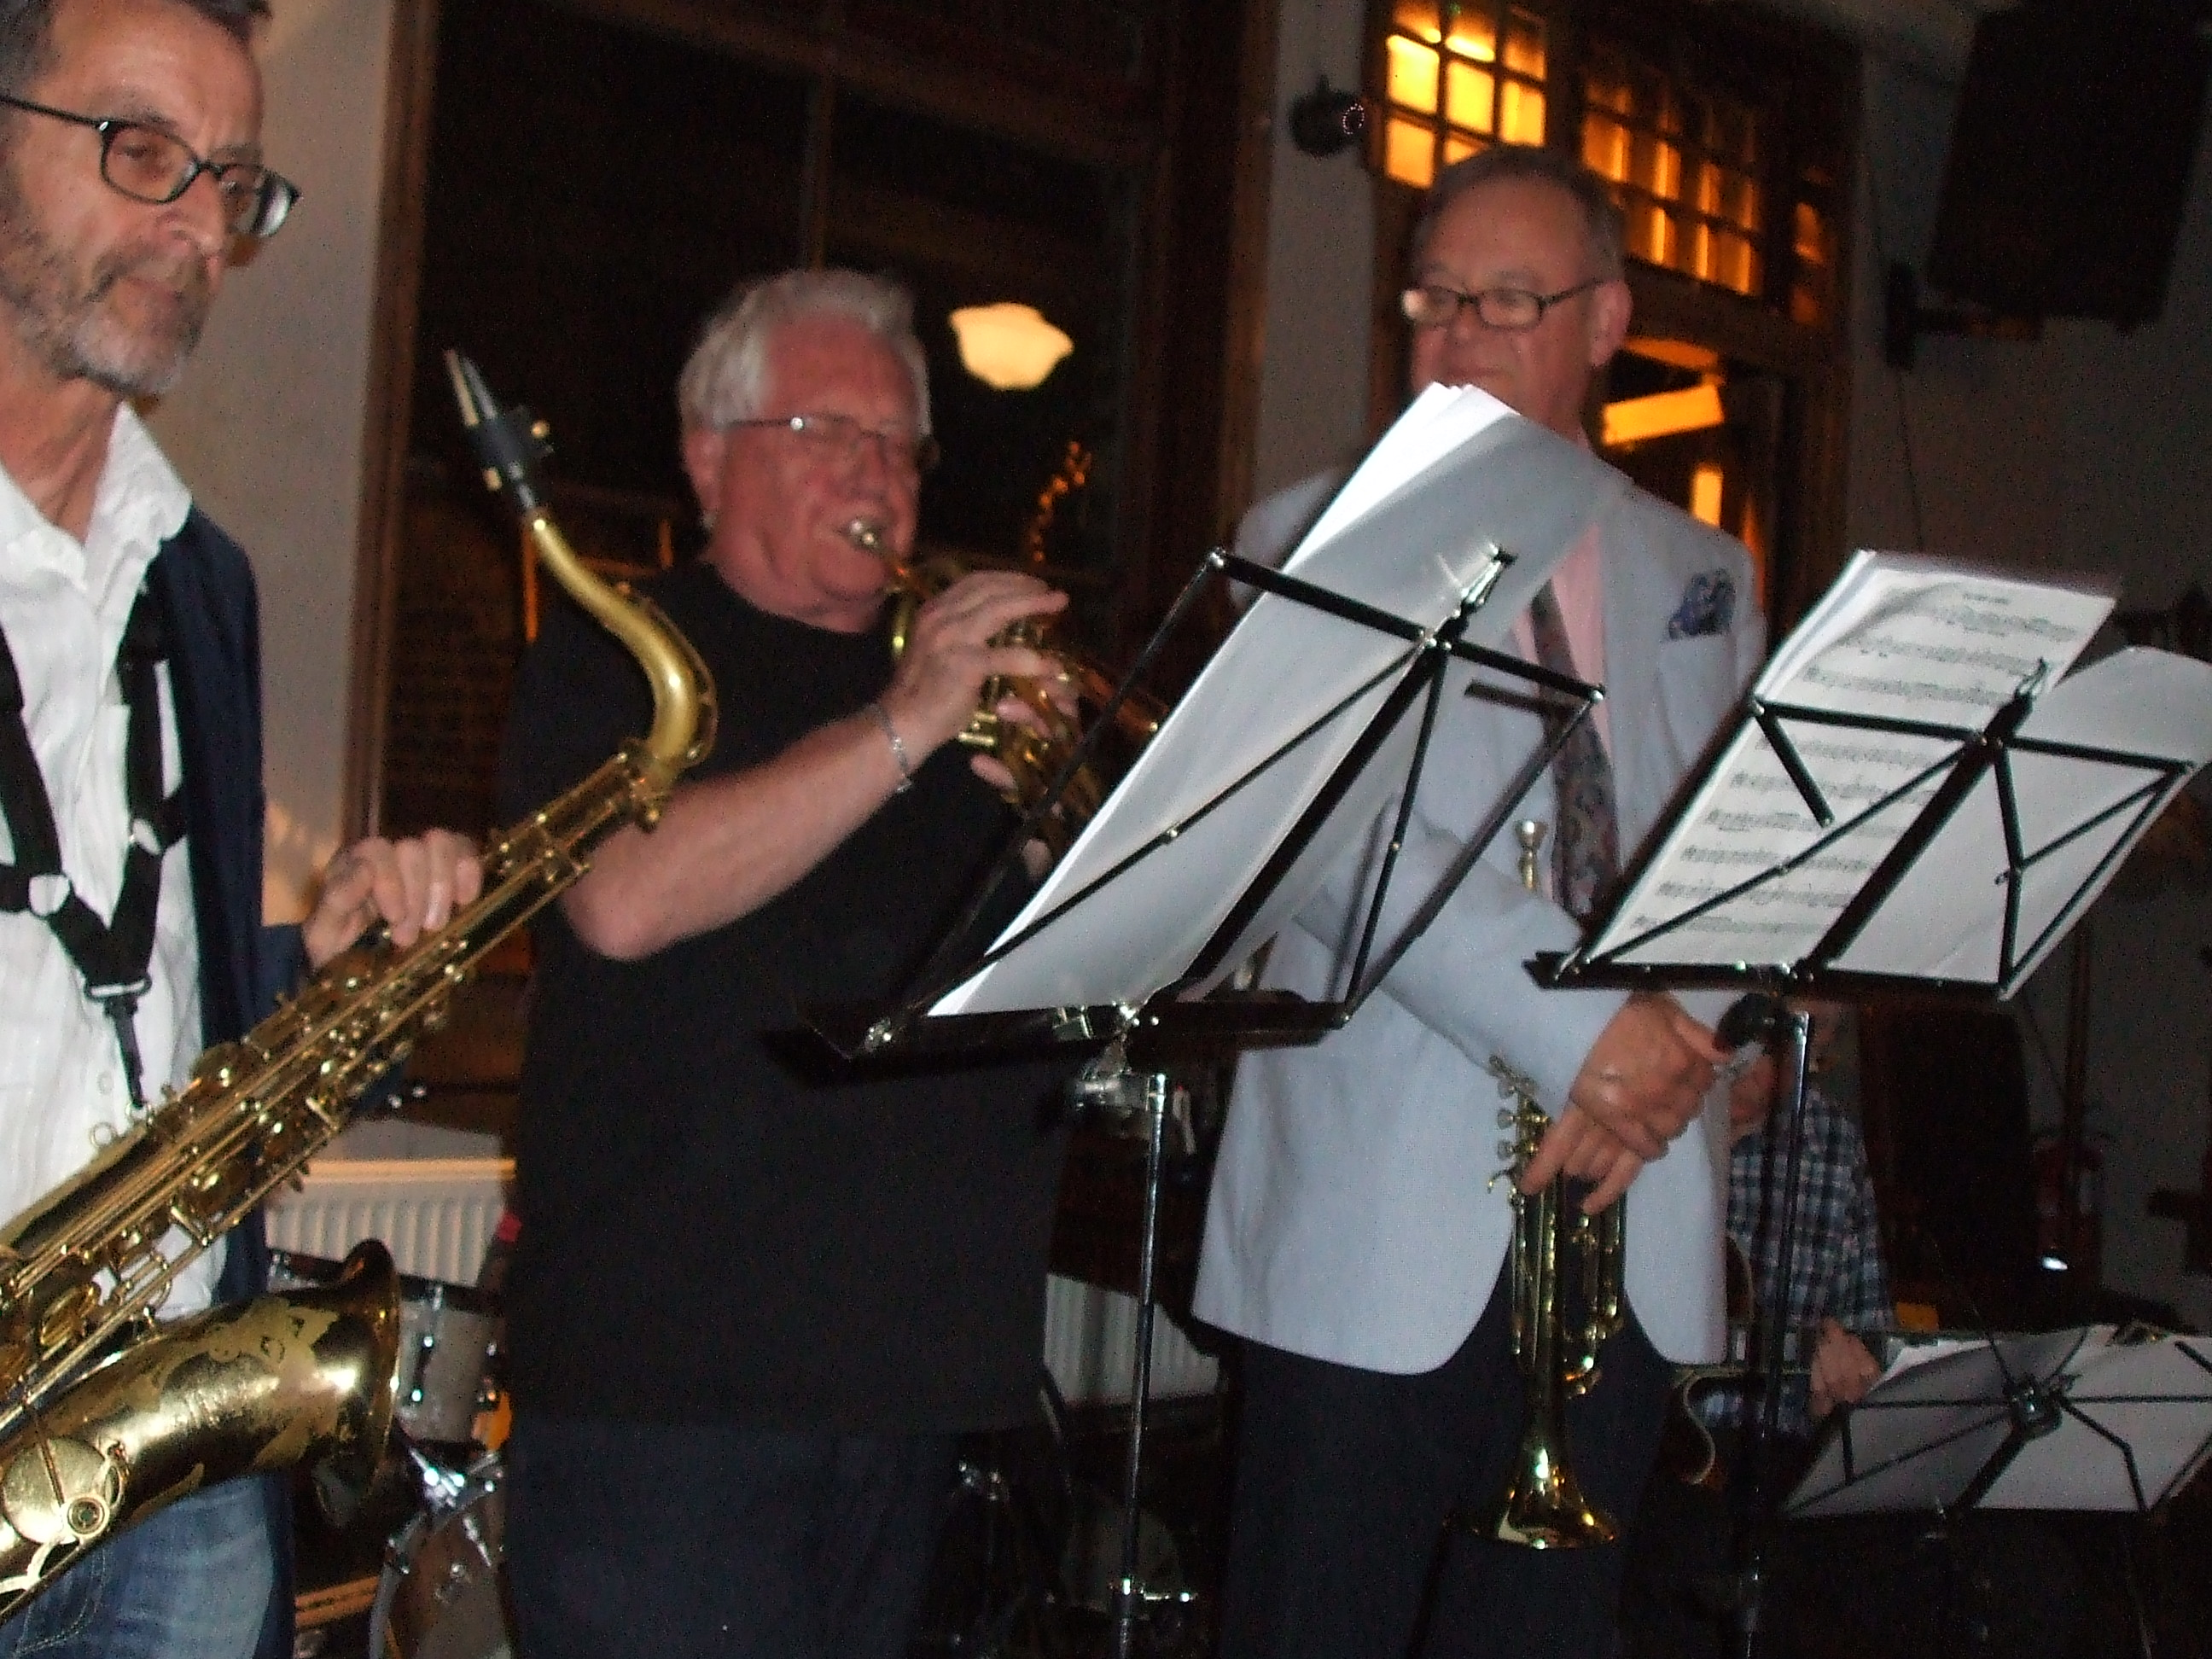 Chris Hodgkins retirement from Jazz Services